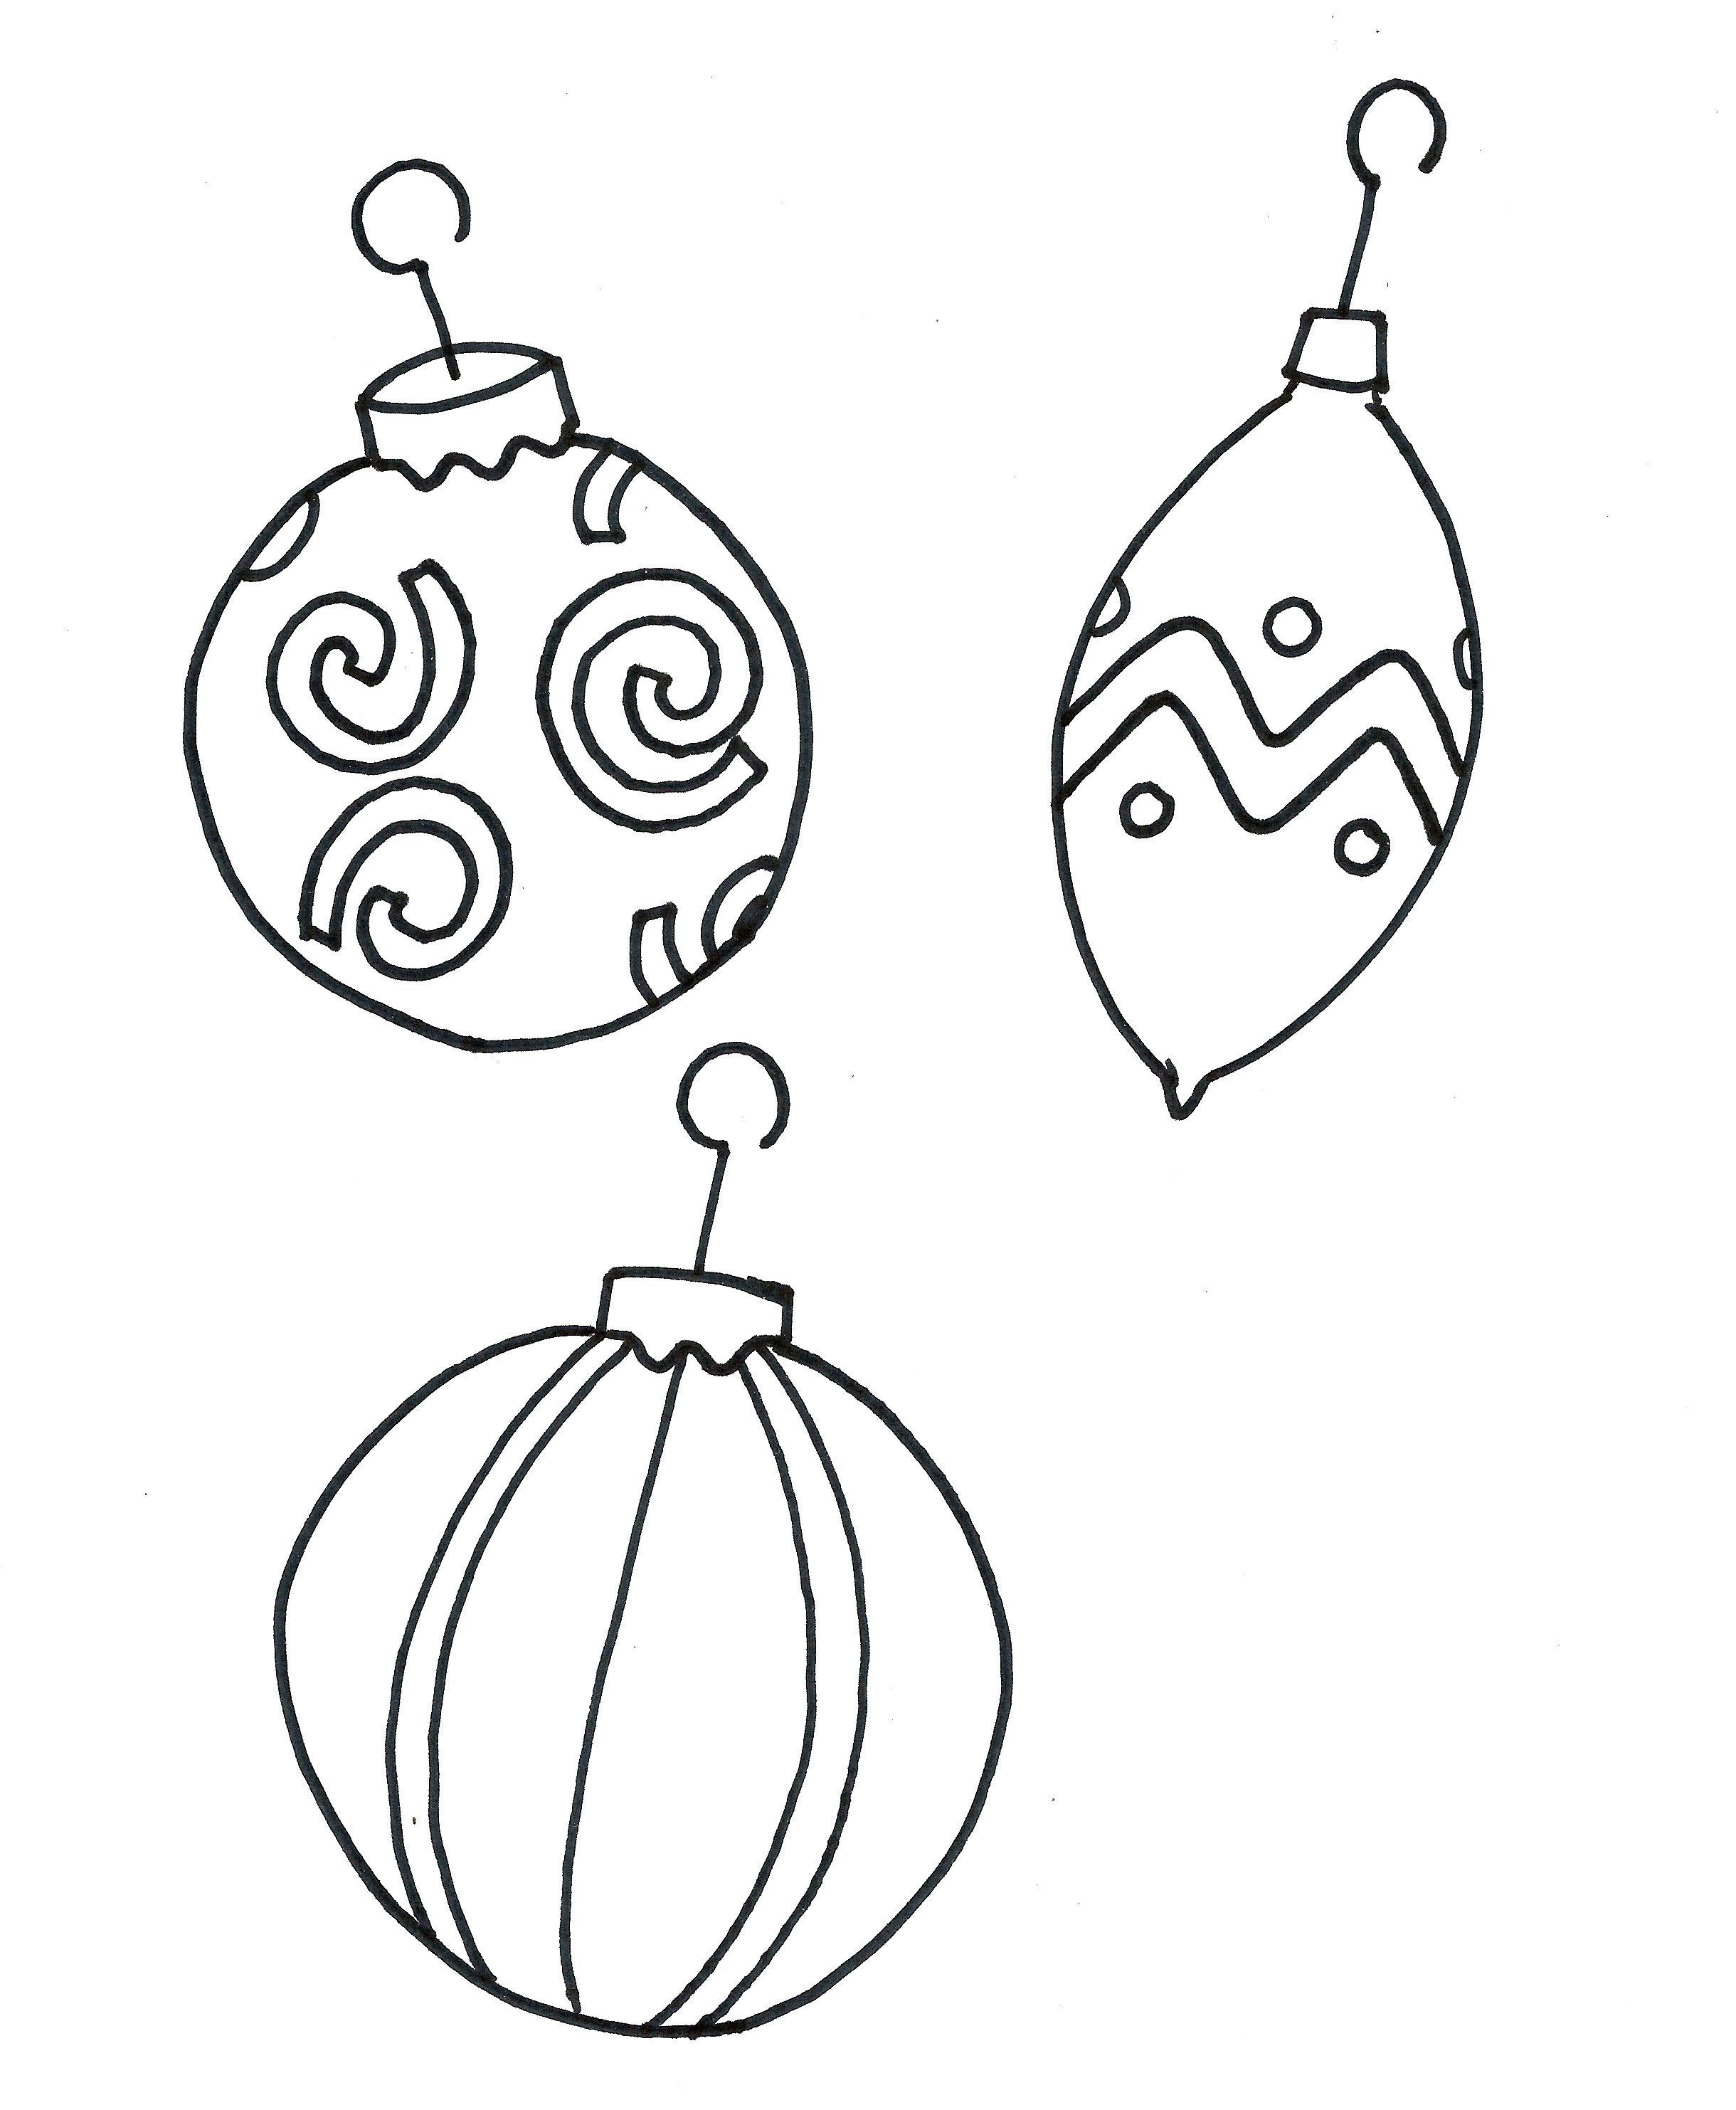 Printable Coloring Pages Christmas Ornament Free | Christmas Crafts - Free Printable Christmas Ornament Coloring Pages